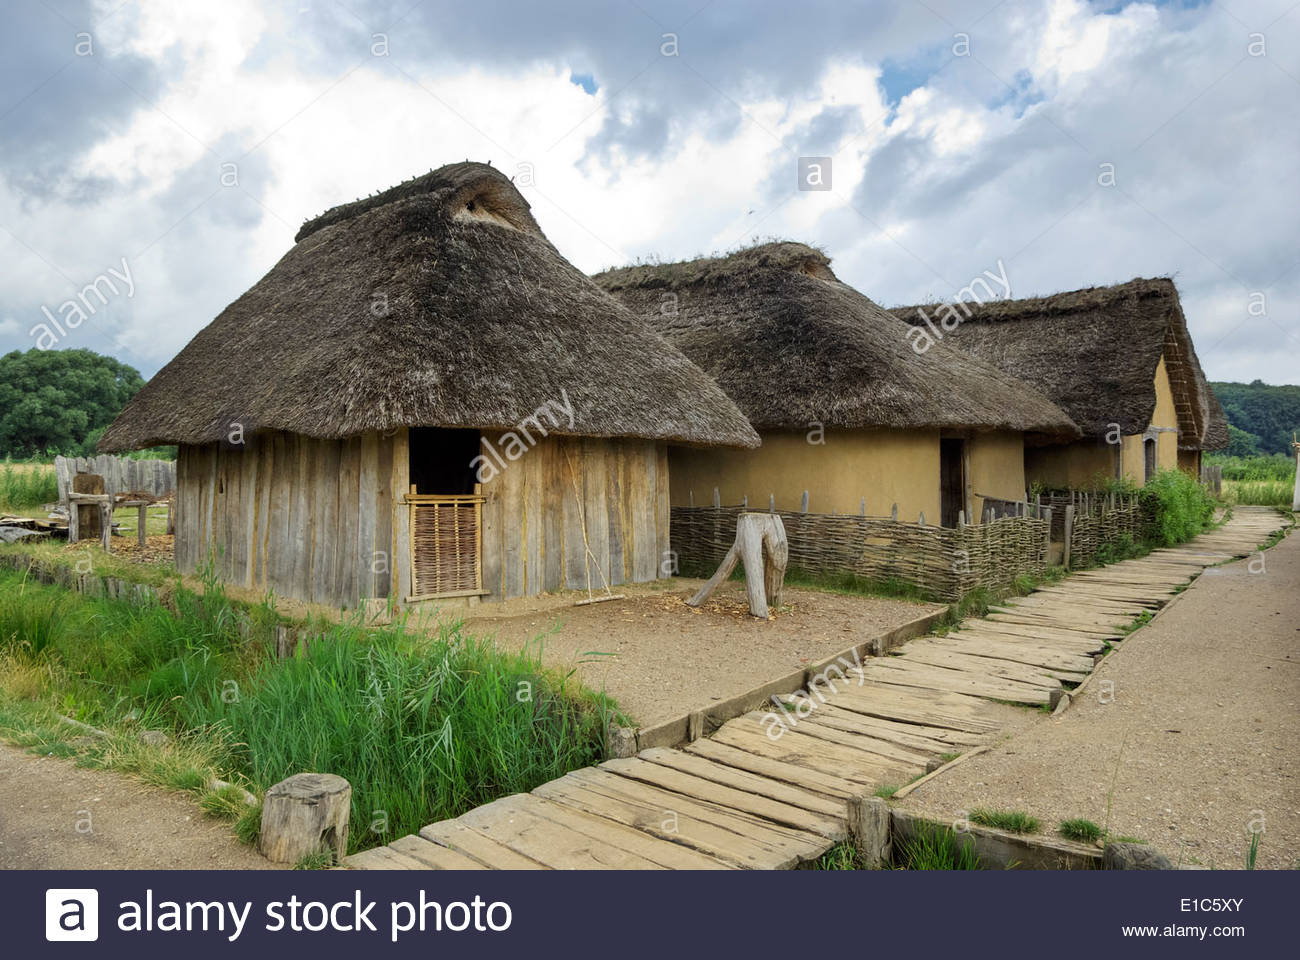 In its heyday, the Viking market town of Haithabu had about 1000 such thatch-roofed houses surrounded by a semicircular rampart. - Stock Image